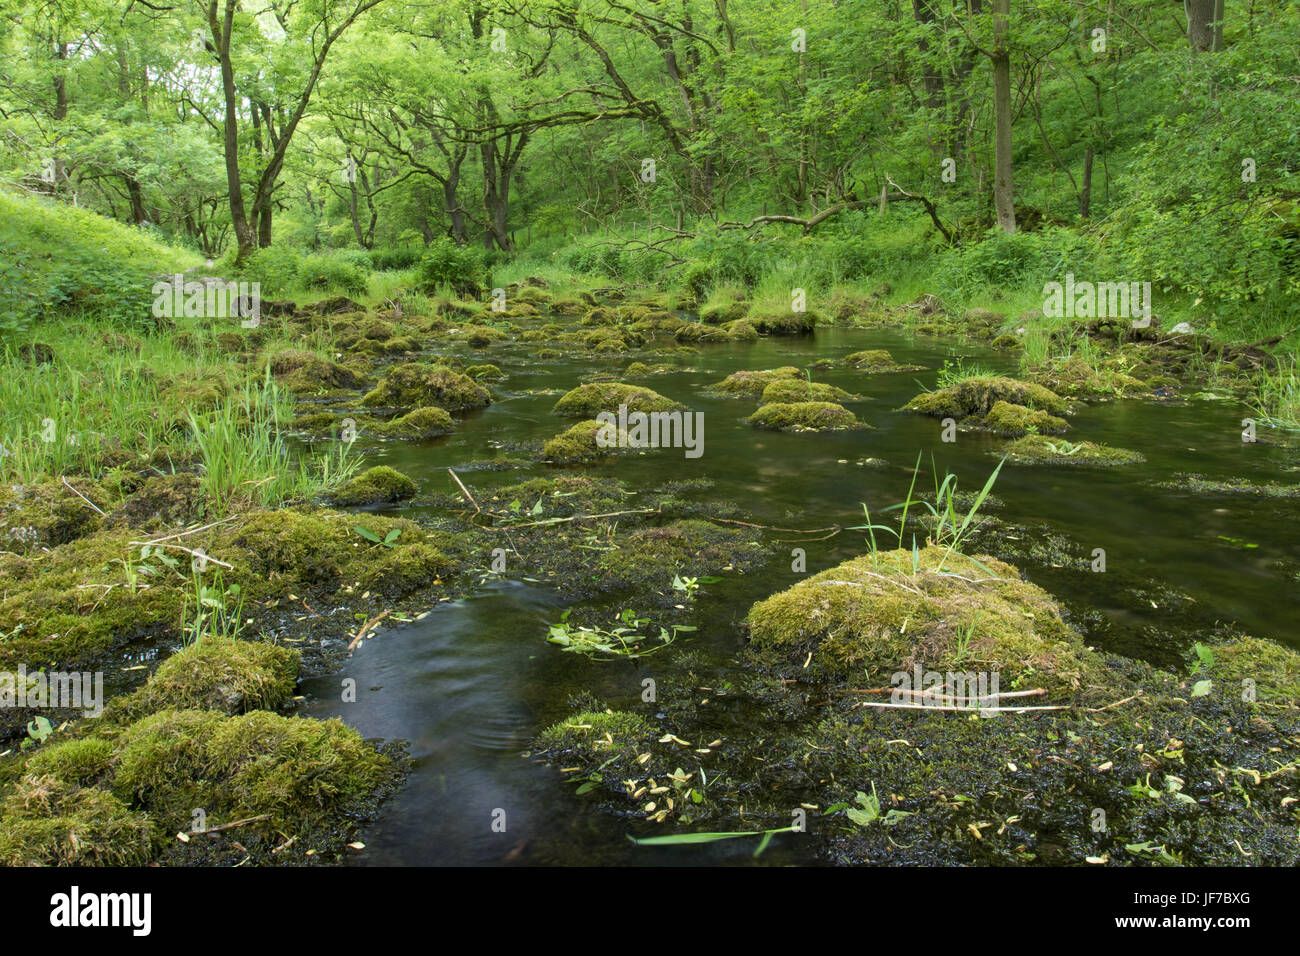 Lush early summer vegetation along the River Lathkill, Peak District National Park, UK - Stock Image